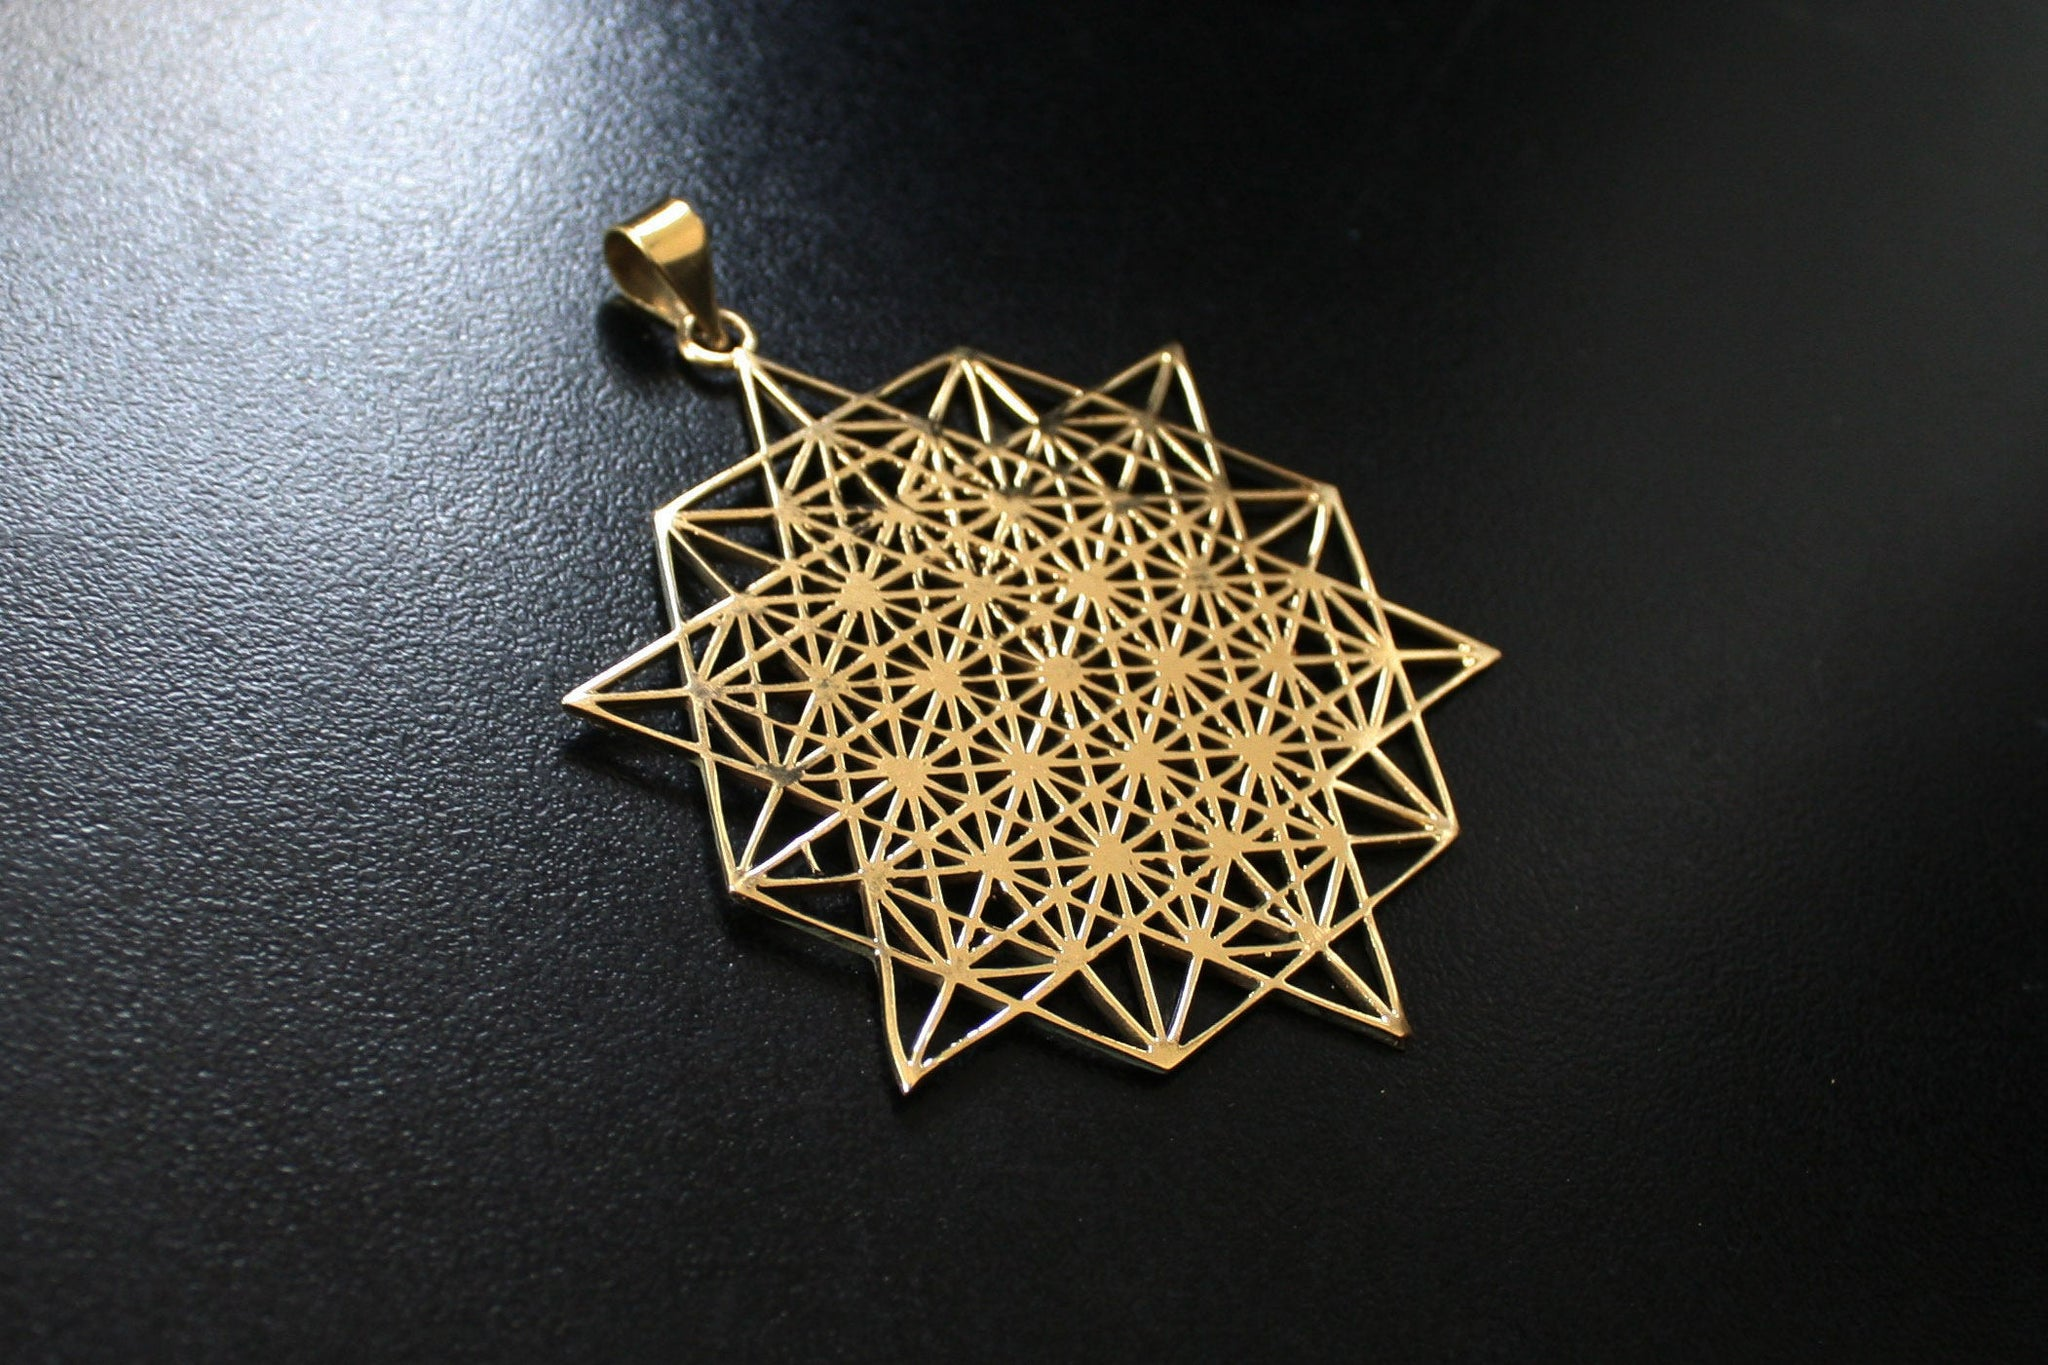 TETRAHEDRON STAR Brass Necklace - Flower of Life Necklace, Mandala Necklace, Sacred Geometry Necklace, Boho Necklace, Geometric Pendant